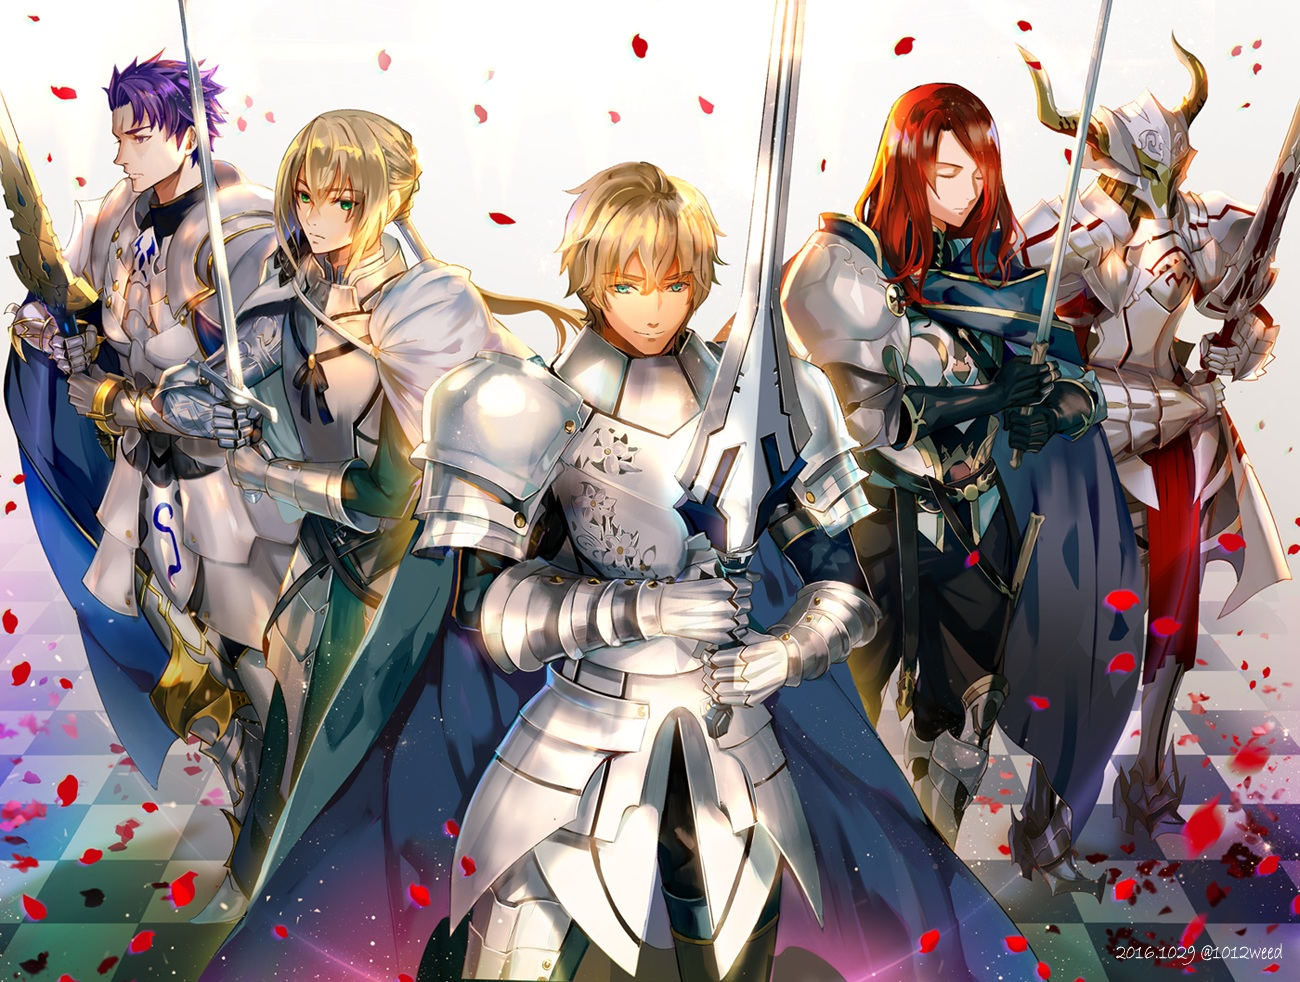 aqua_eyes armor bedivere blonde_hair boots cape fate/grand_order fate_(series) gawain gloves green_eyes group horns lancelot_(fate) long_hair male mordred petals ponytail purple_hair red_hair short_hair sword tristan_(fate/grand_order) watermark weapon weed